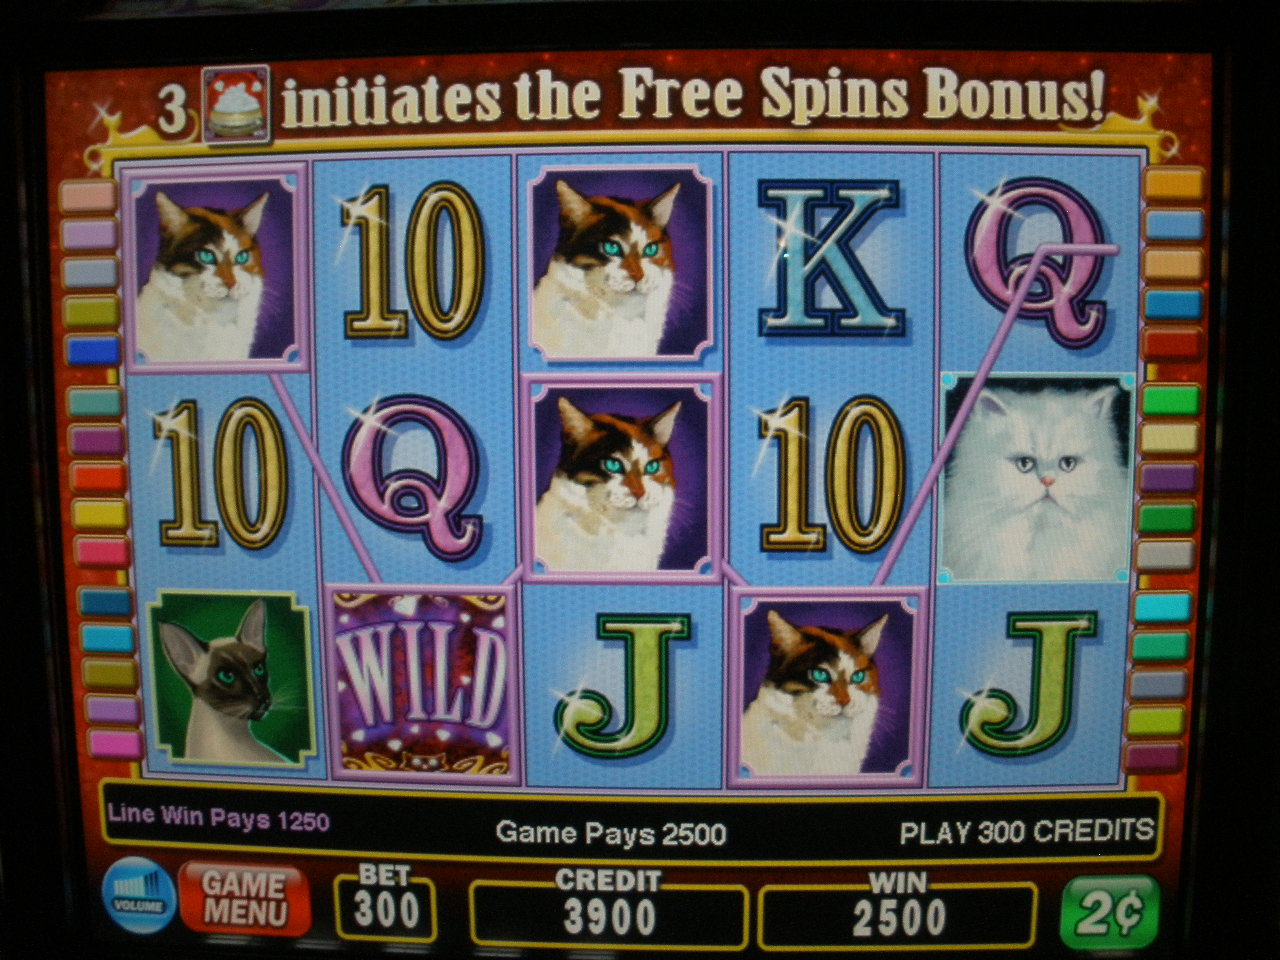 Igt Kitty Glitter O44 Video Slot Machine With Lcd Touchscreen